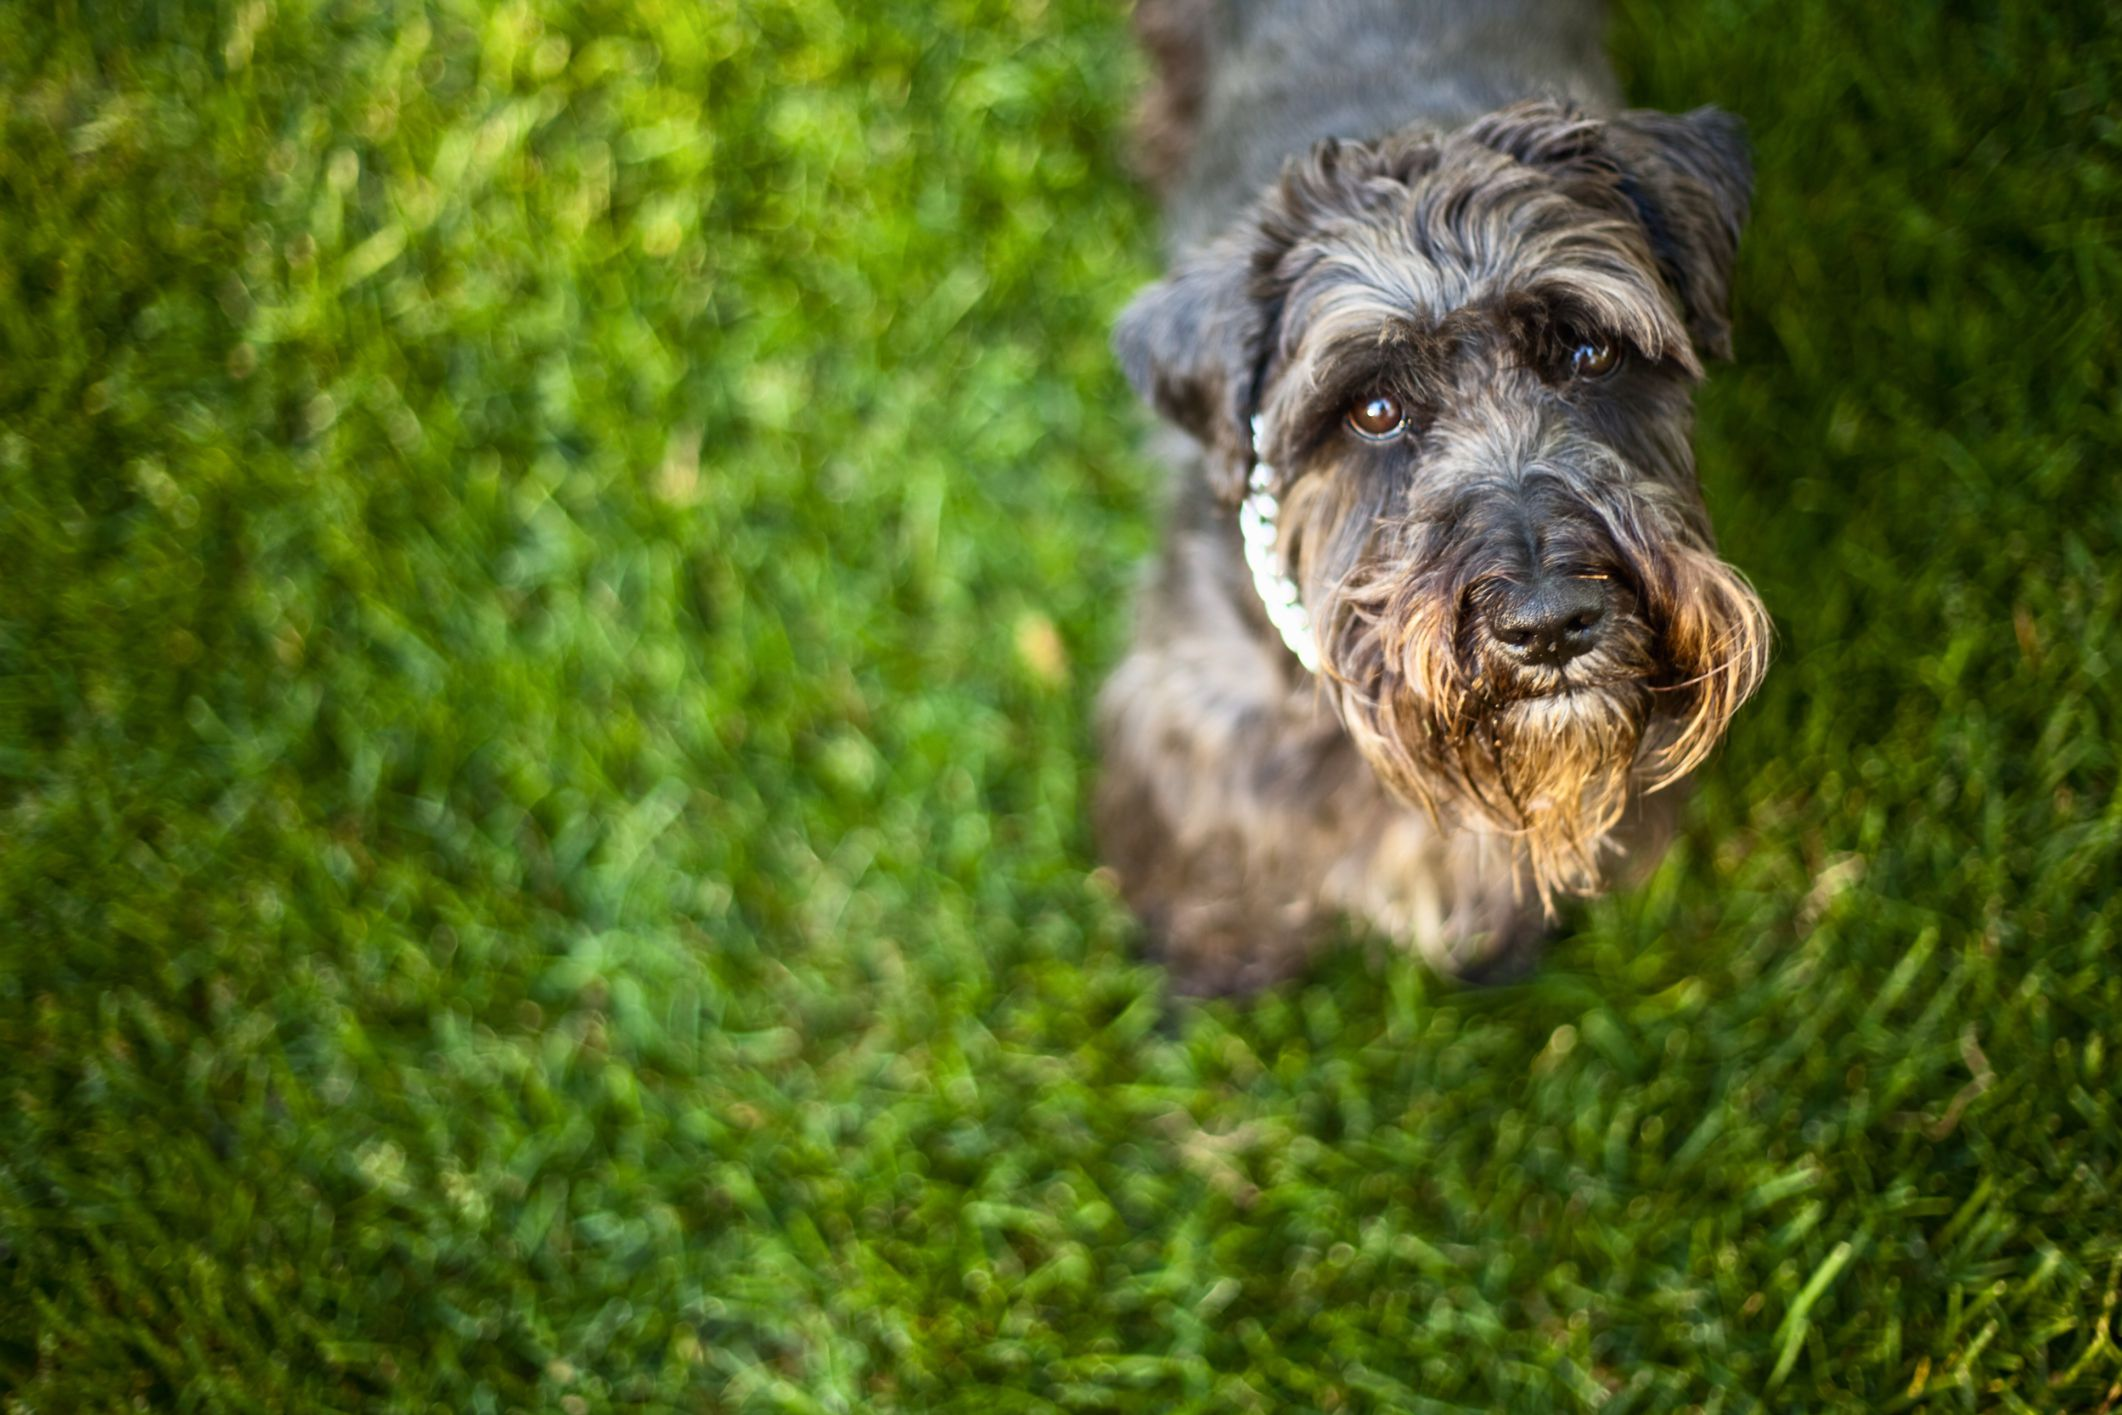 Tips And Tricks For Getting Rid Of Fleas On Dogs